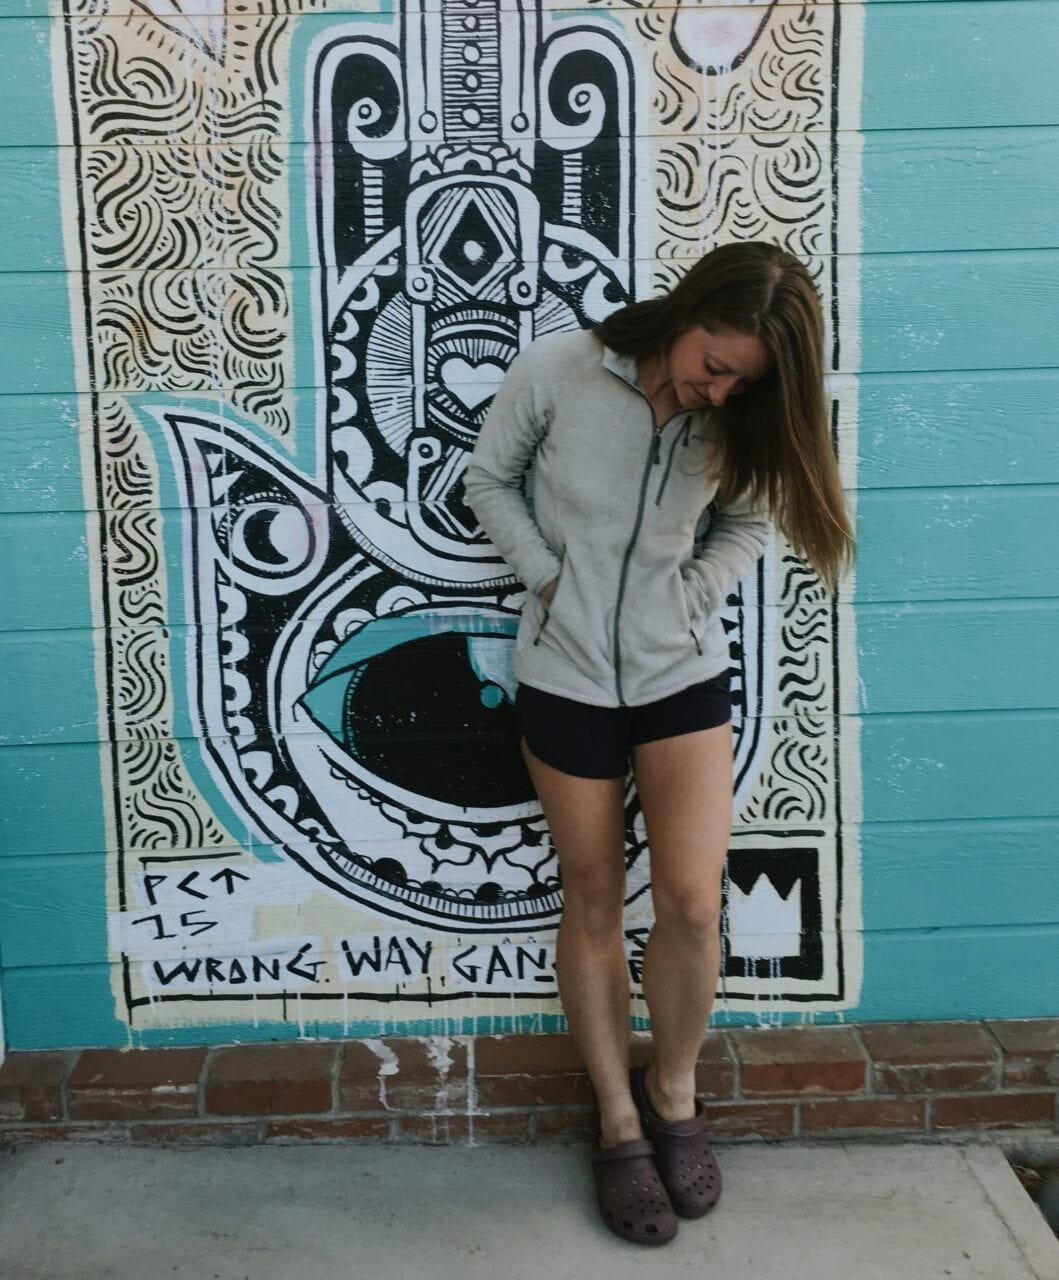 A woman posing against a wall with street art.